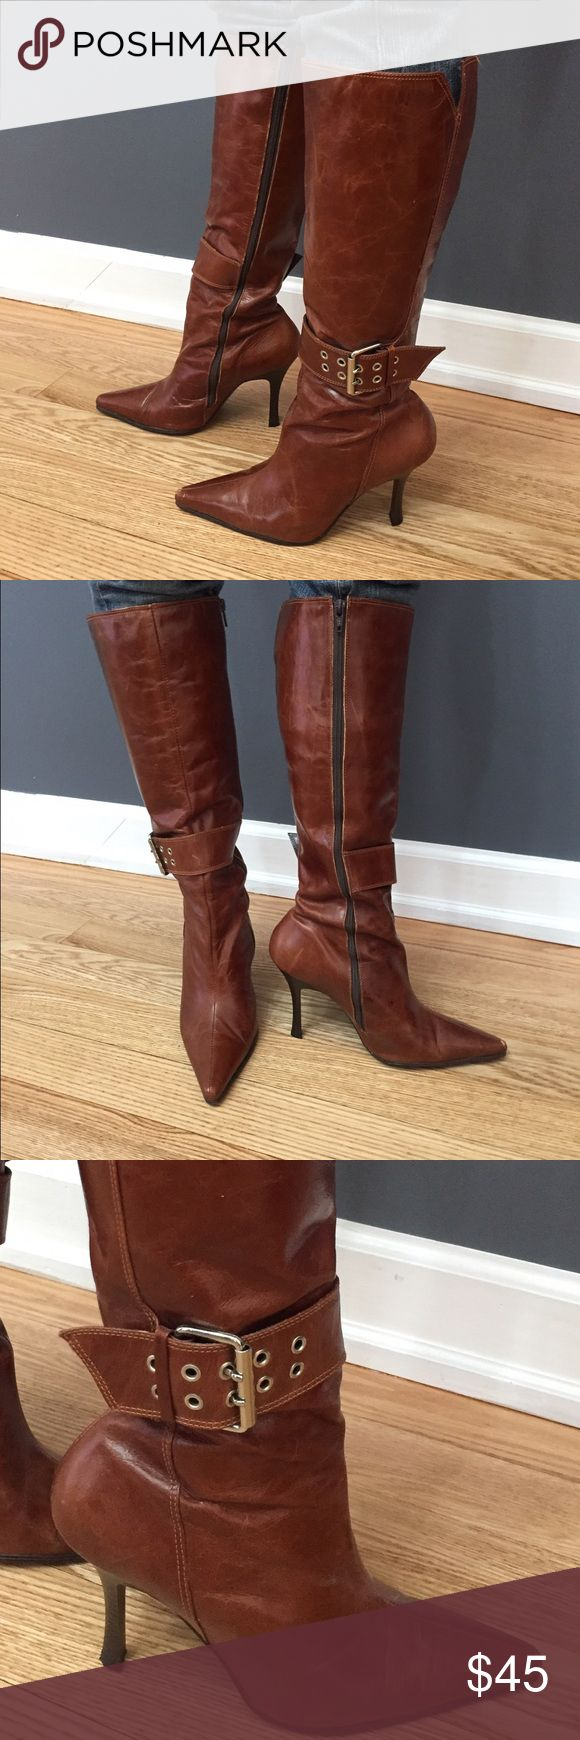 (Pre-owned) Brown heels boots 👢👢😍 (Pre-owned) Brown High Heels Boots 👢👢gently used • comfortable • size 7 • leather • made in Brazil Shoes Heeled Boots